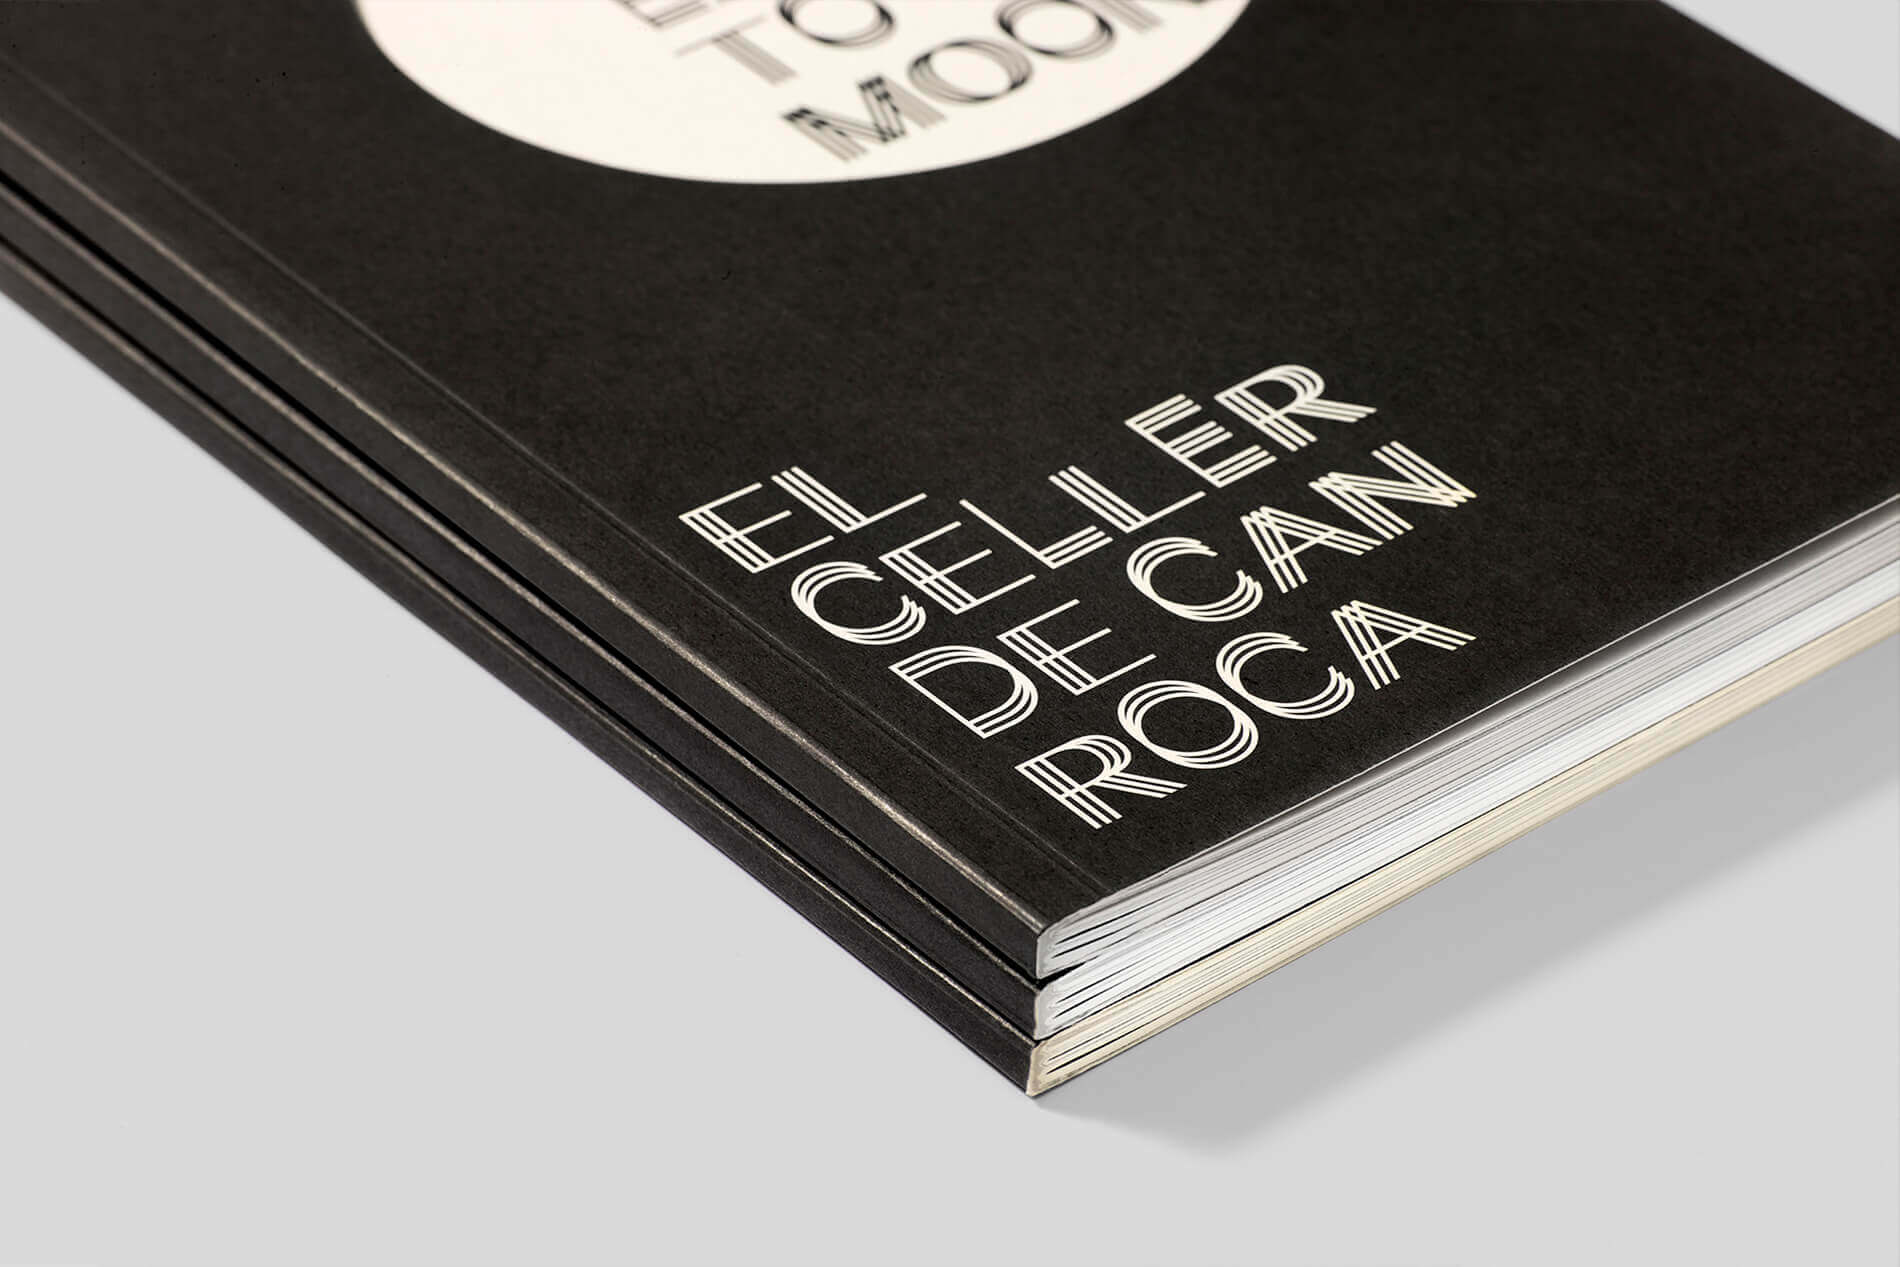 El Celler de Can Roca - Selected - 2016